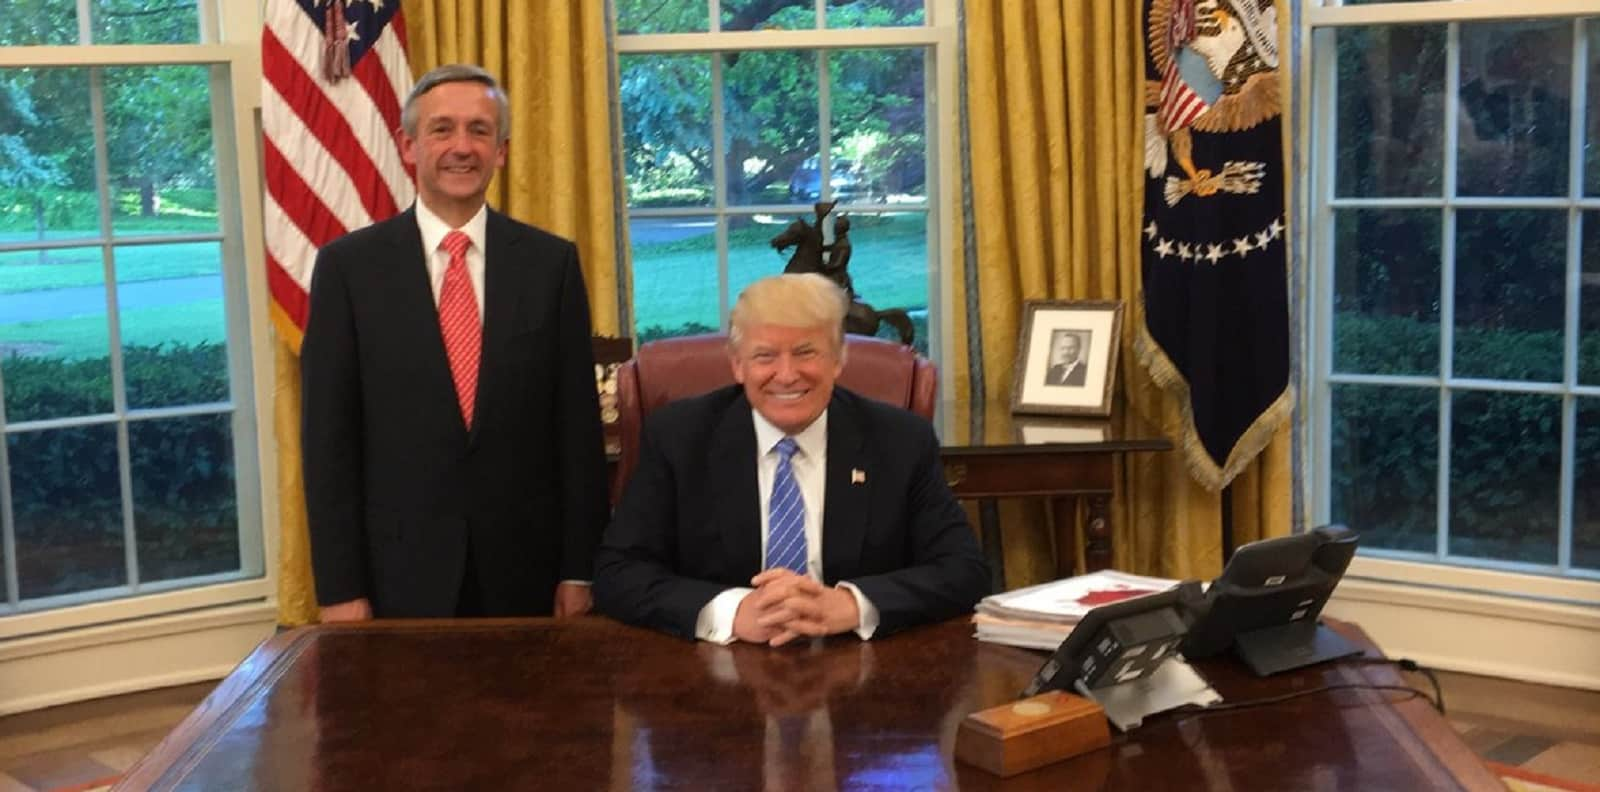 Robert Jeffress and Trump